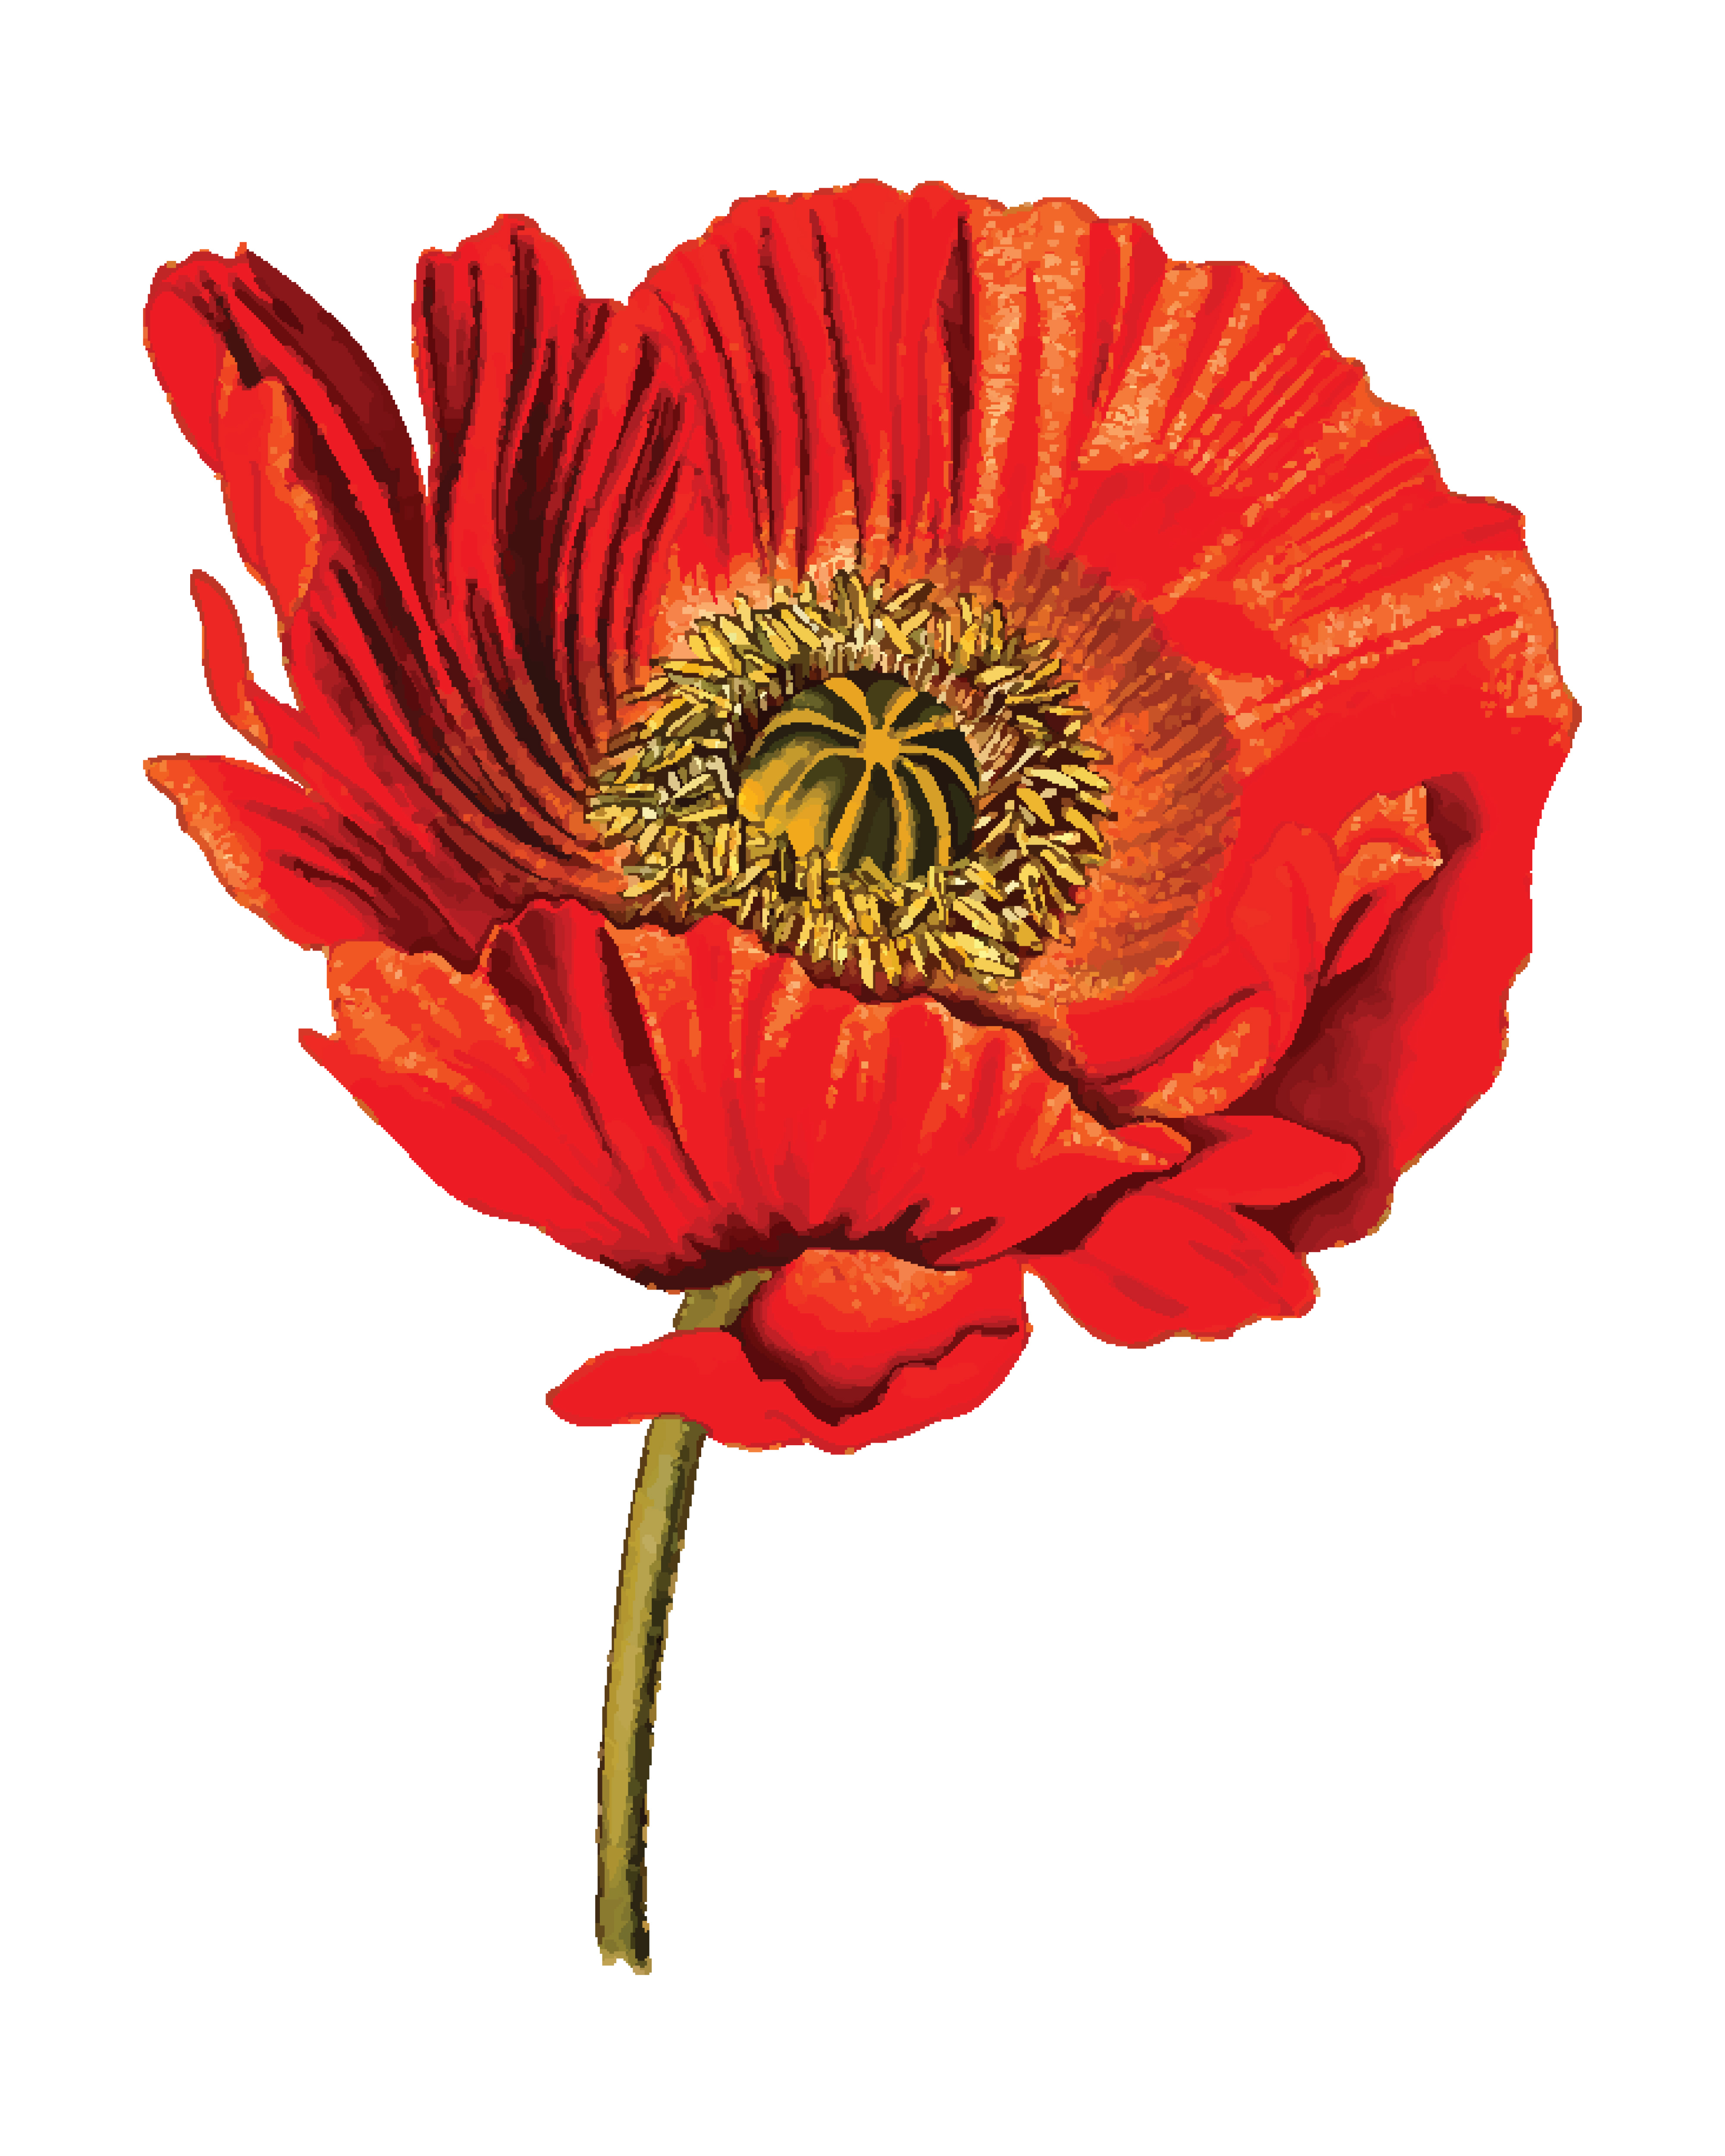 Clipart of a poppy flower free clipart of a poppy flower 00011406 mightylinksfo Images